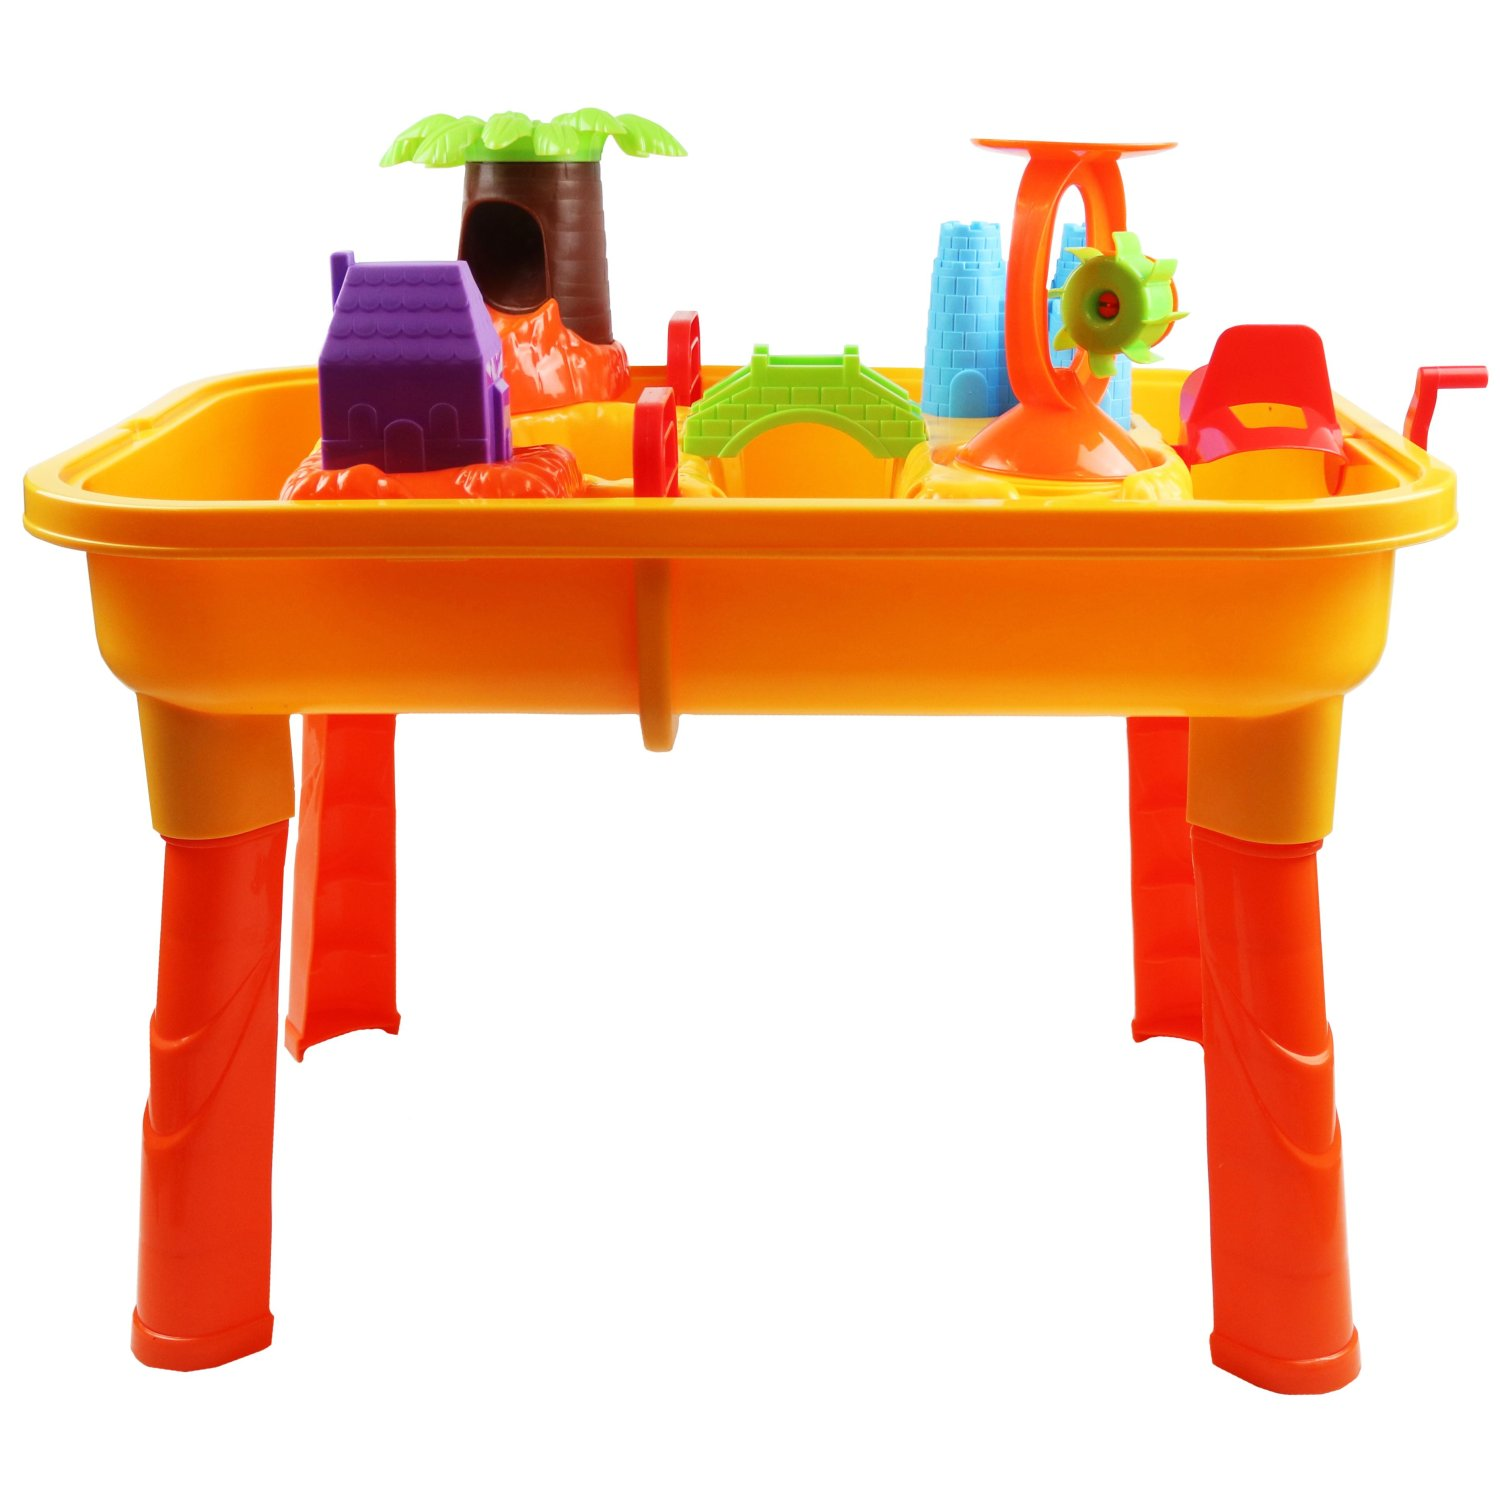 Table Top Toys For Preschoolers : Toddlers kids childrens sand water table toy with